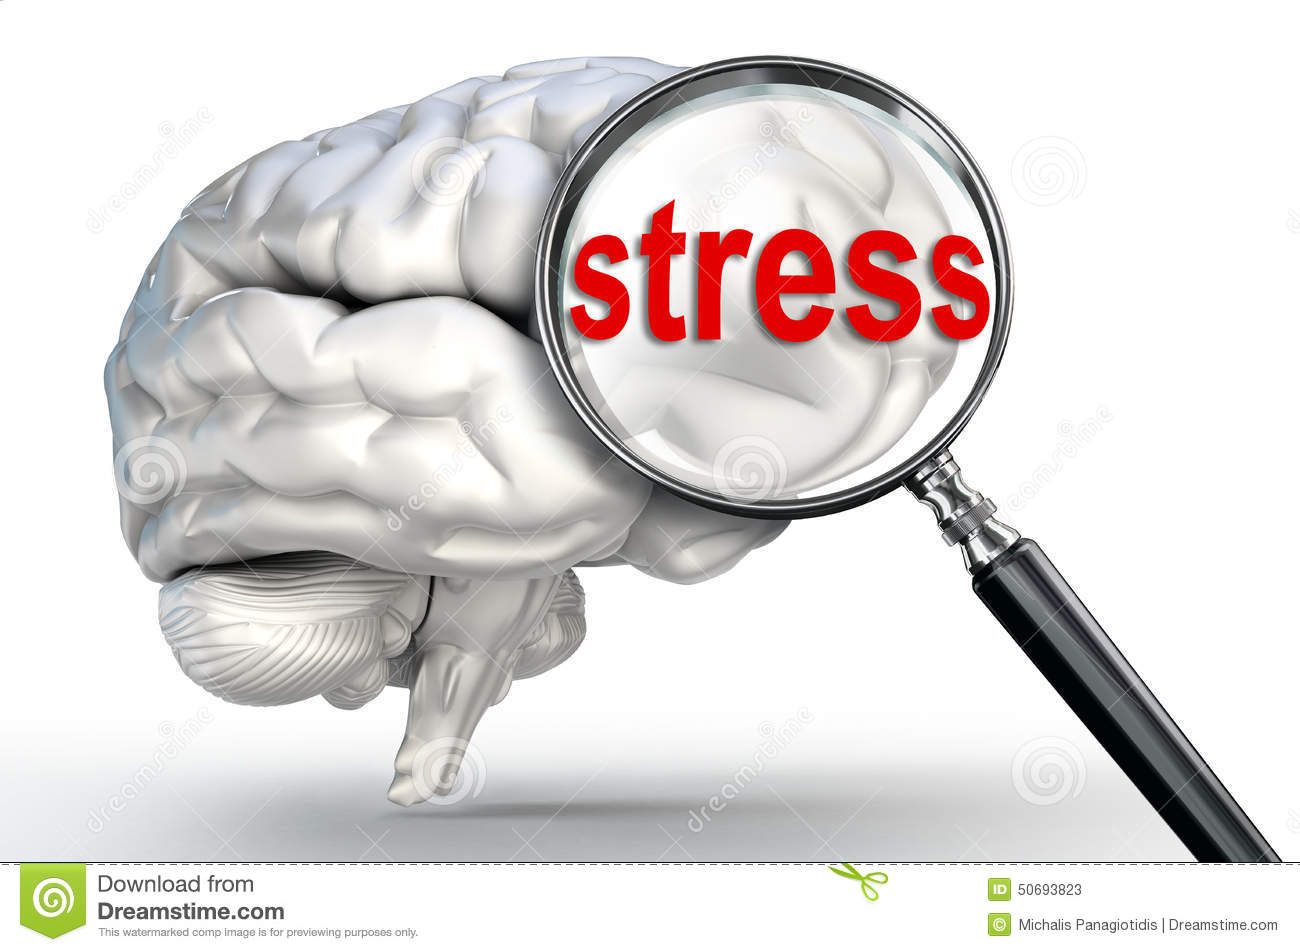 Stress word on magnifying glass and human brain stock illustration download stress word on magnifying glass and human brain stock illustration illustration of depressed ccuart